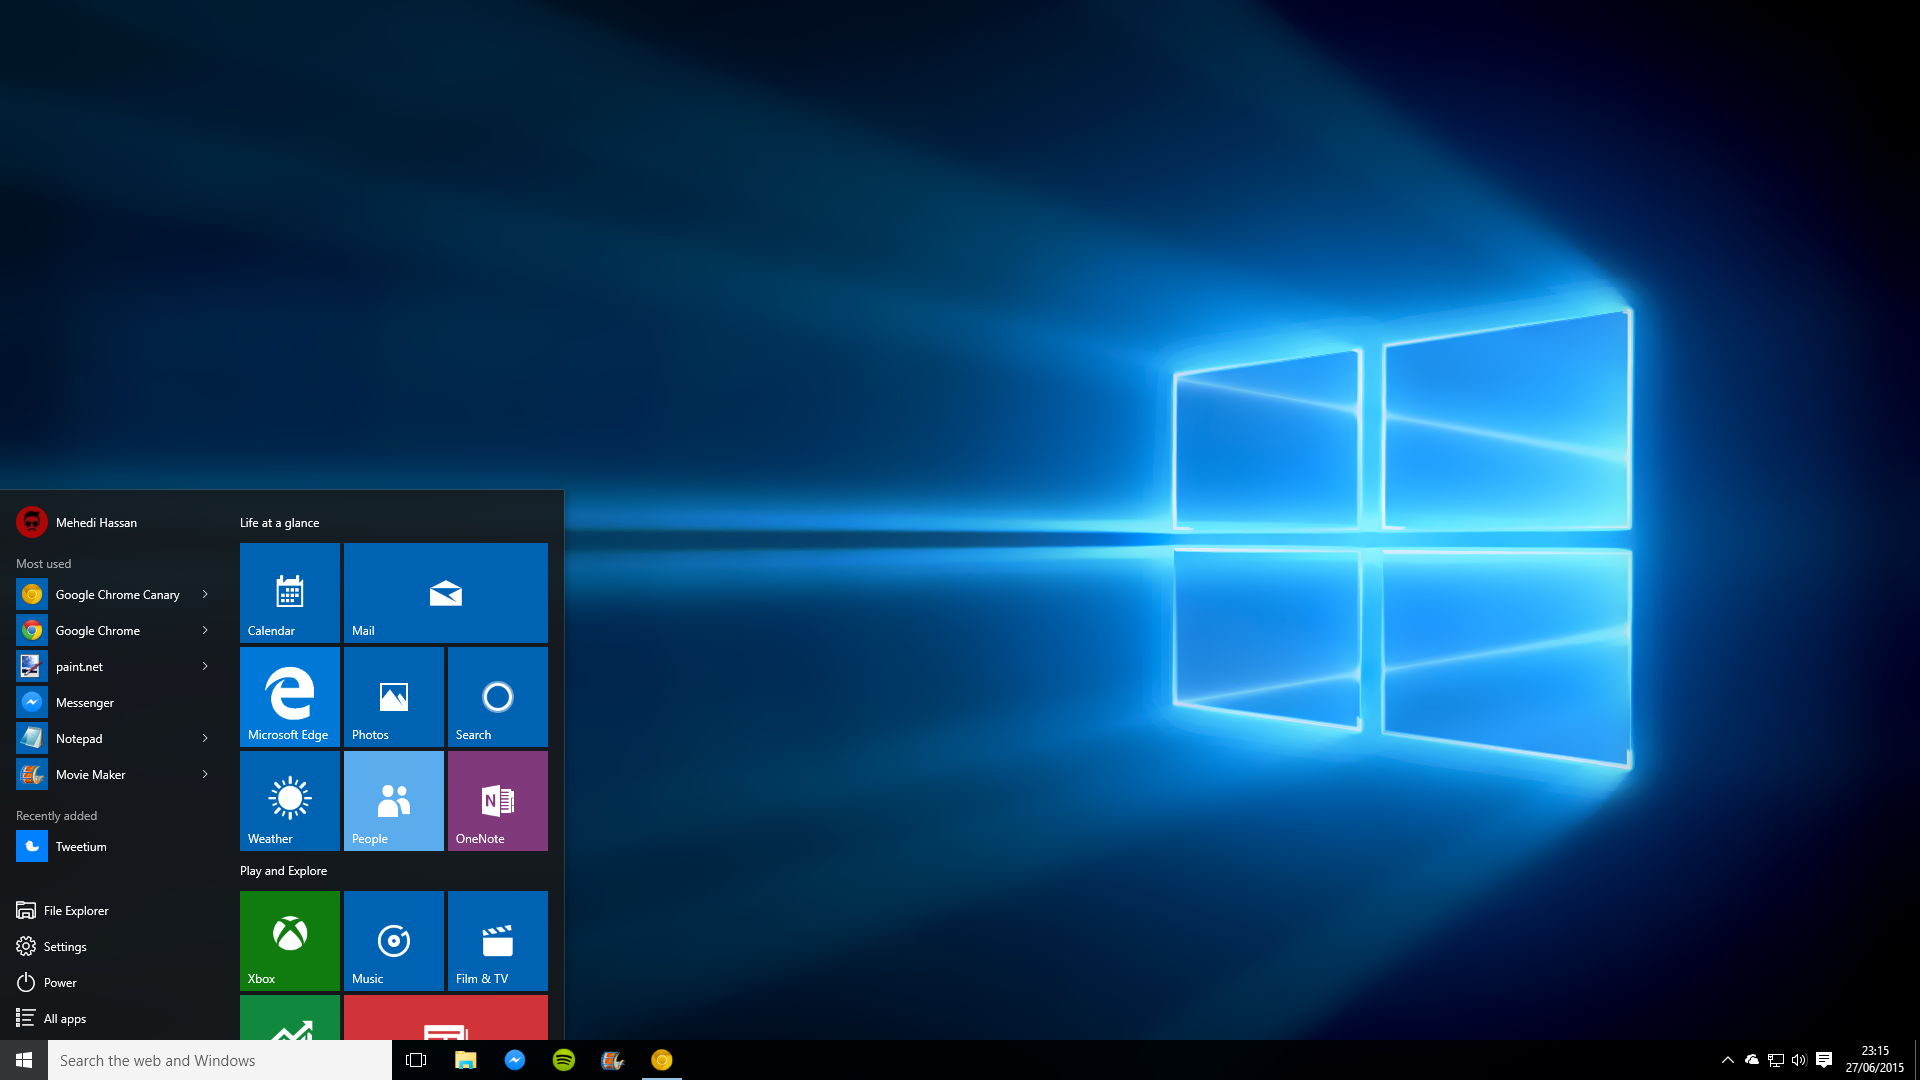 Windows 10 May 2020 Update arriva a fine maggio - Data Manager Online